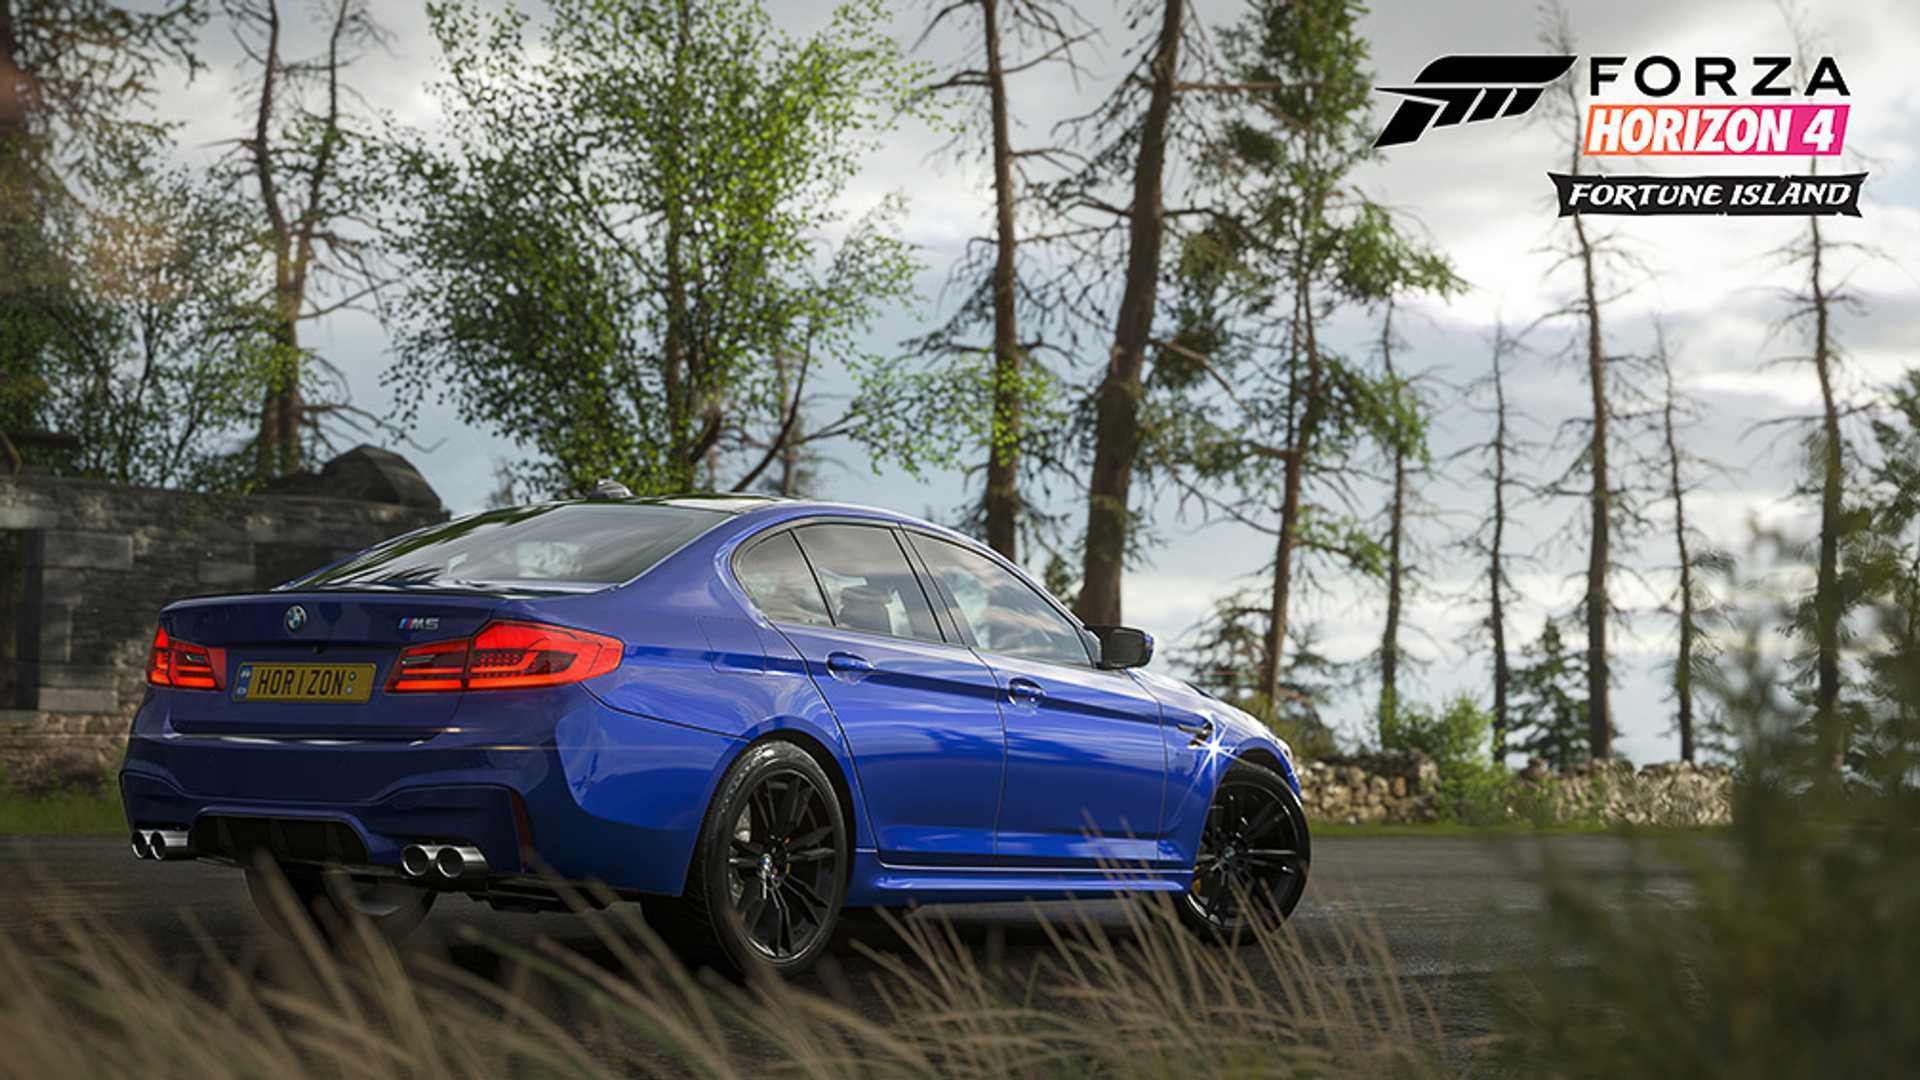 Forza Horizon 4 Fortune Island Wallpapers Read Games Review Play Online Games Amp Download